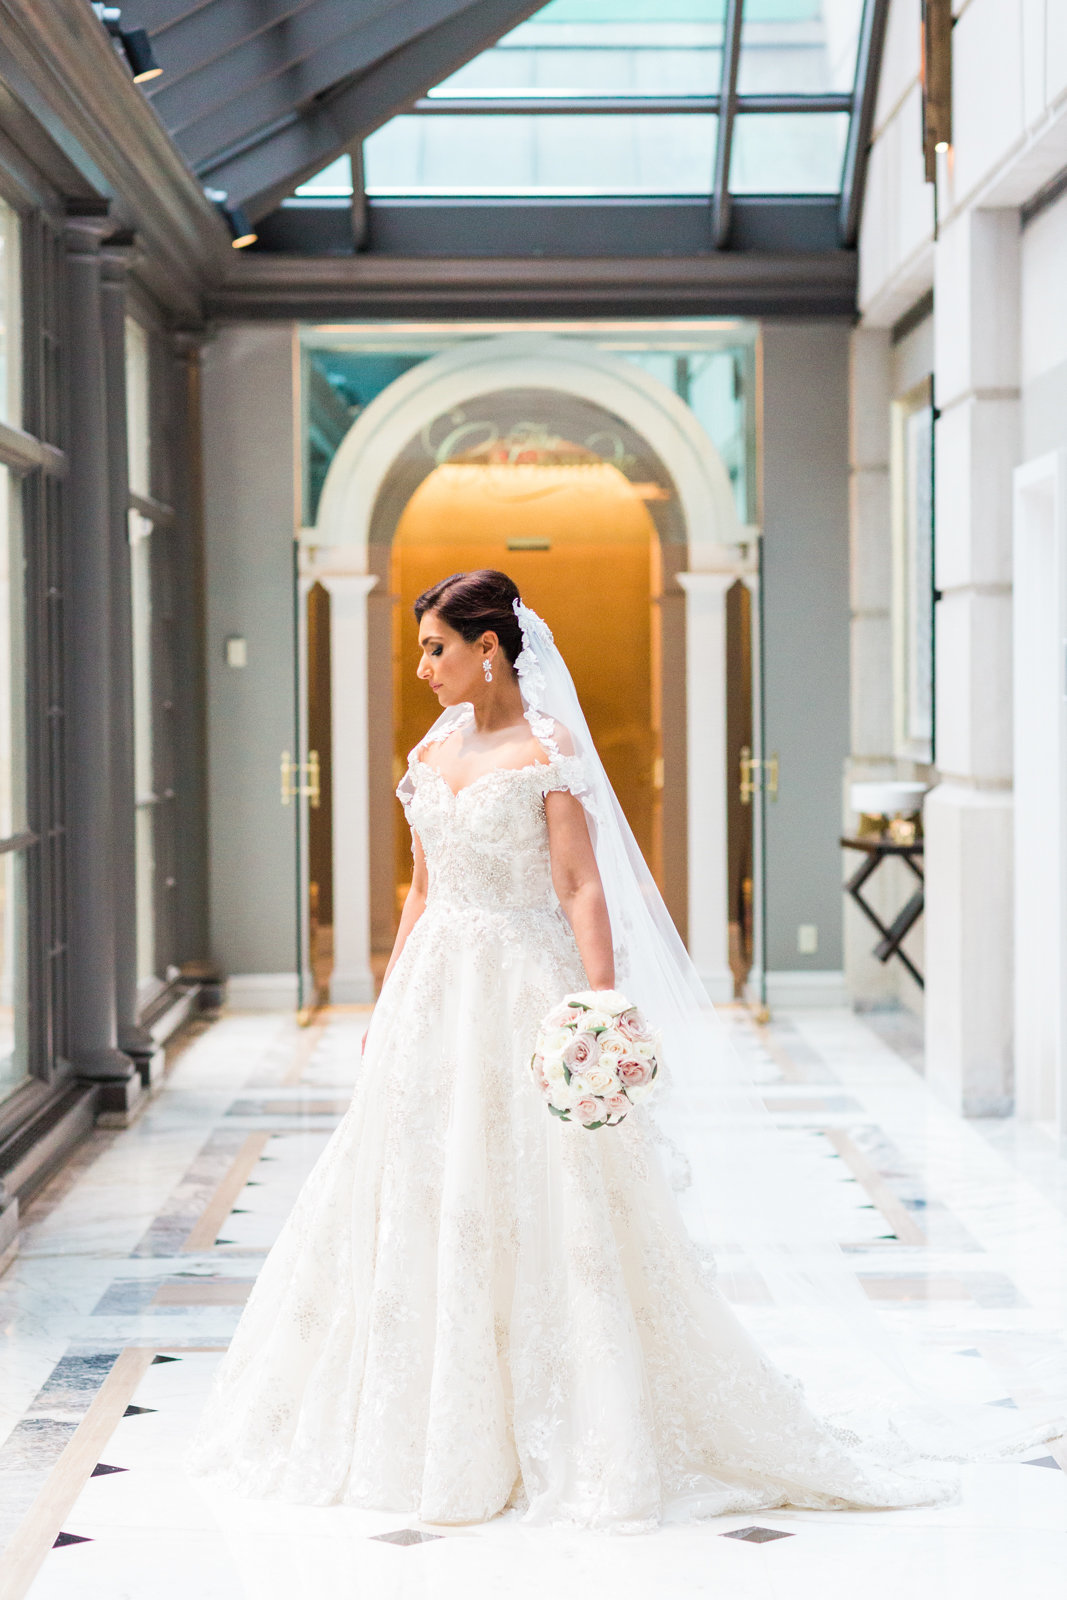 Fine art DC bridal portrait photographer